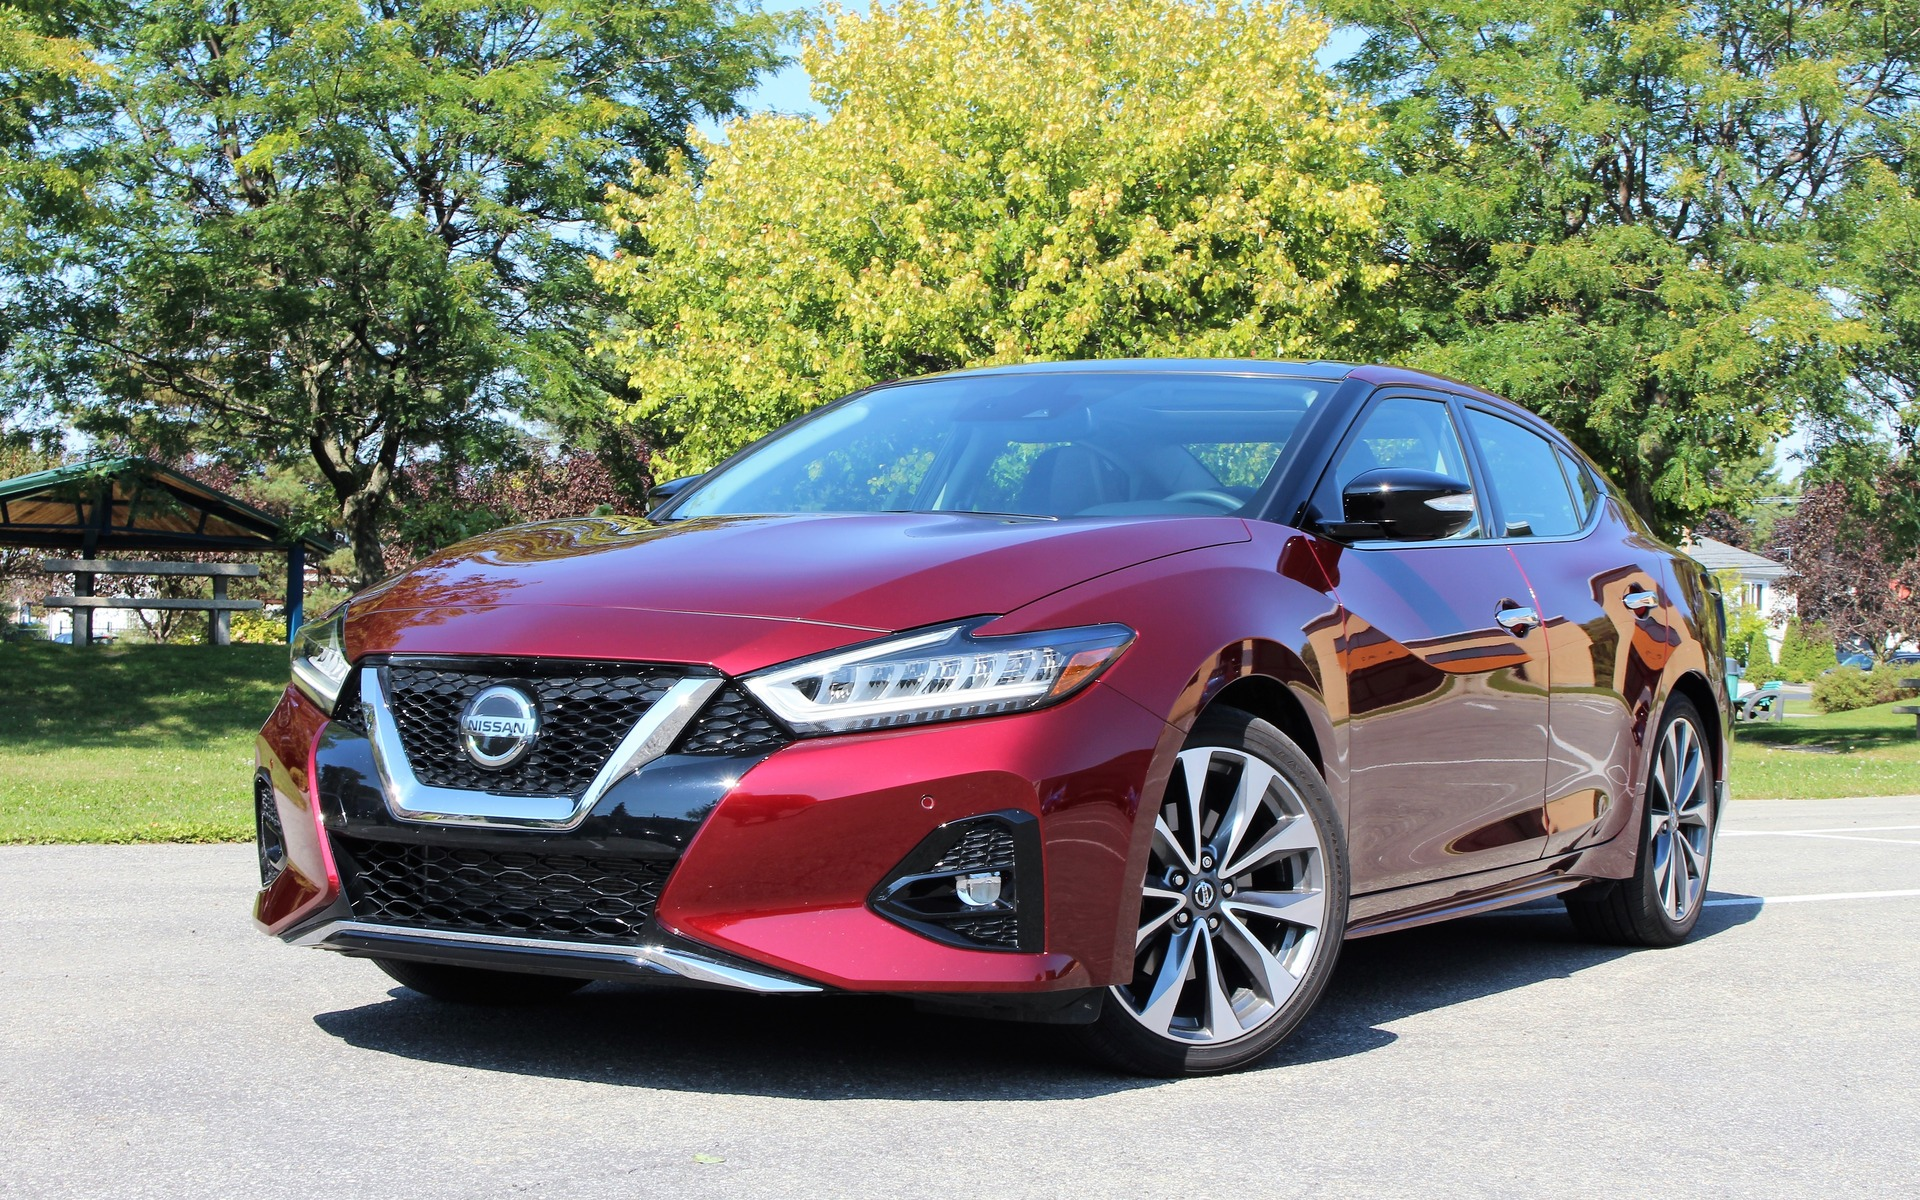 2019 Nissan Maxima The Salesman S Luxury Car The Car Guide